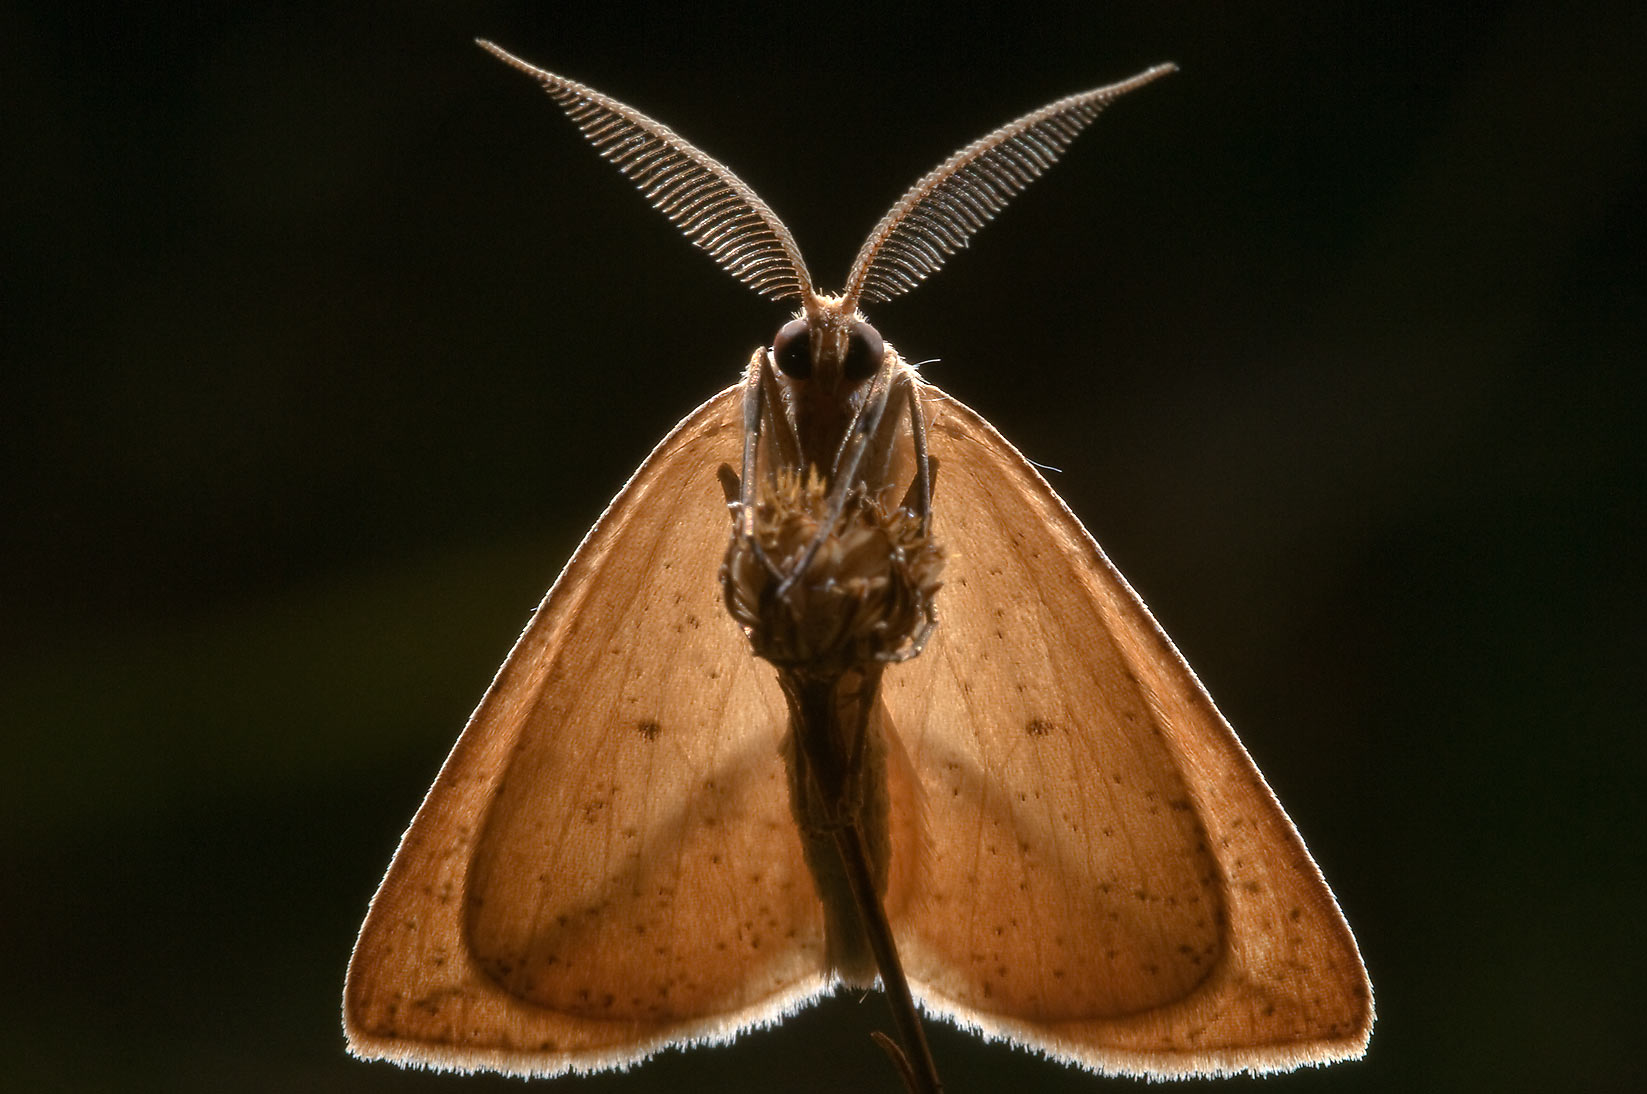 Back lit moth, ventral view, in Lick Creek Park. College Station, Texas